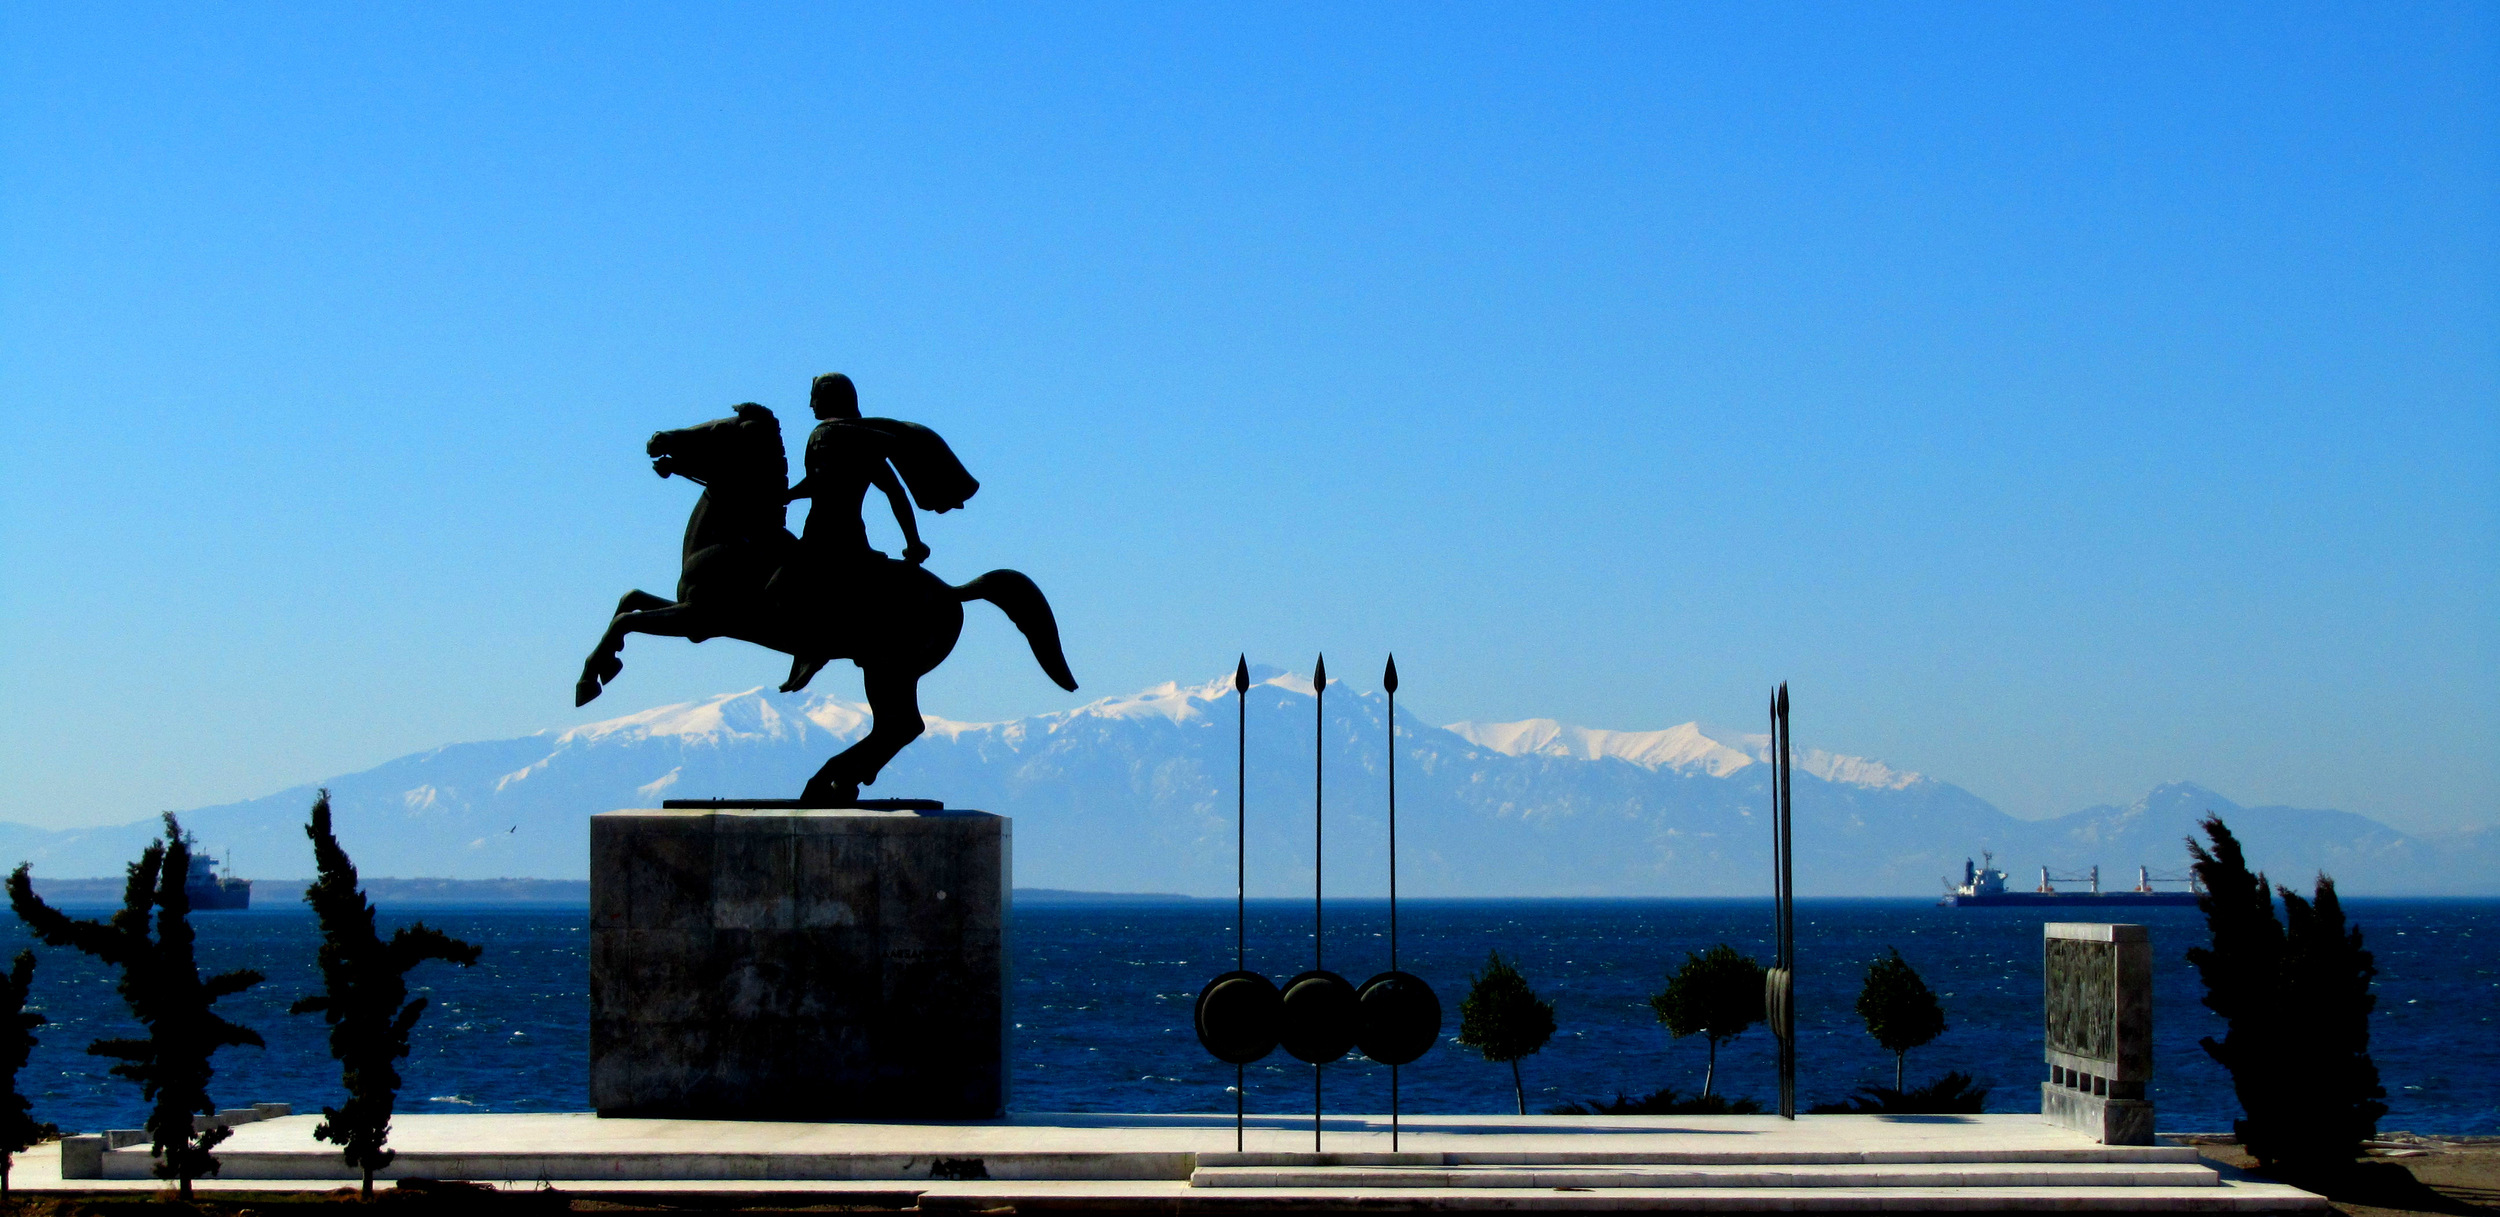 Statue of Alexander the Great, Thessaloniki, Greece